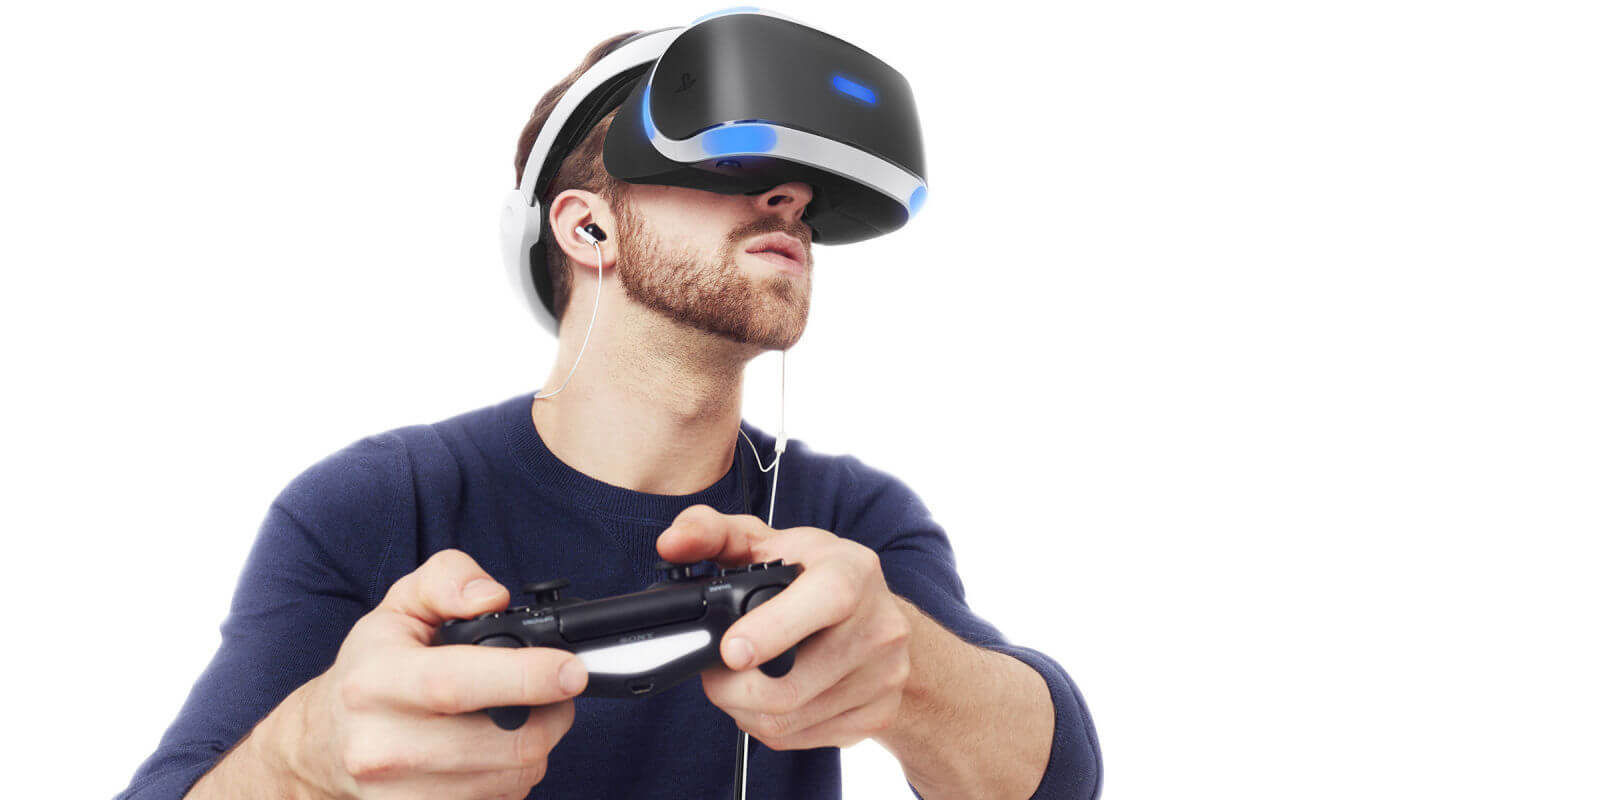 Playstation VR Briller Test